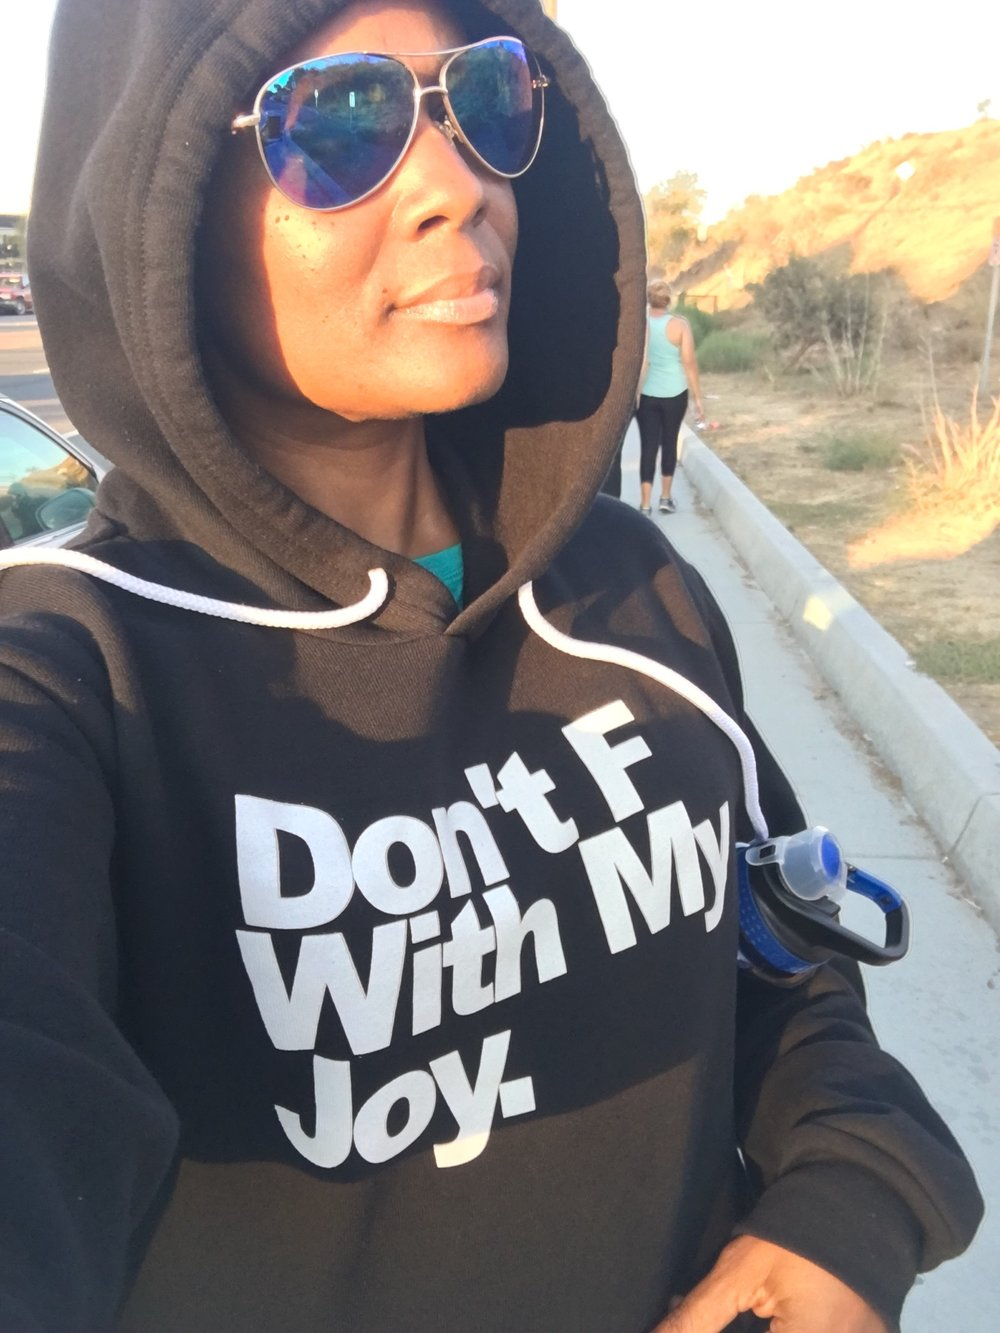 stephanie edwards @ trendspotter    #iAmHappiest when...   I am spending time with loved ones whom I trust and feel free as a butterfly So #Dontfwithmyjoy